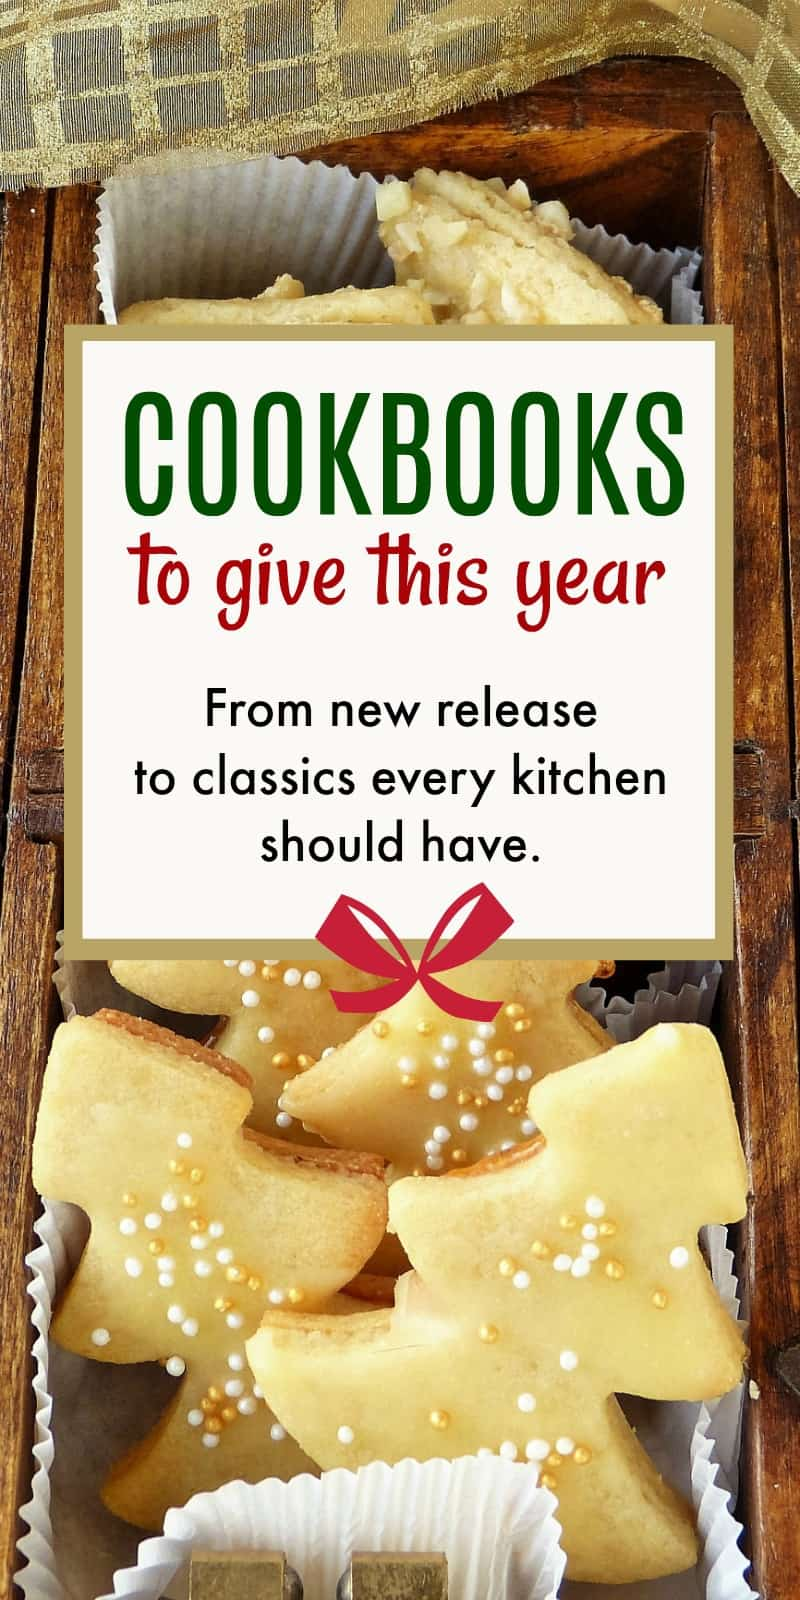 Best Cookbooks to Give This Year | 31Daily.com